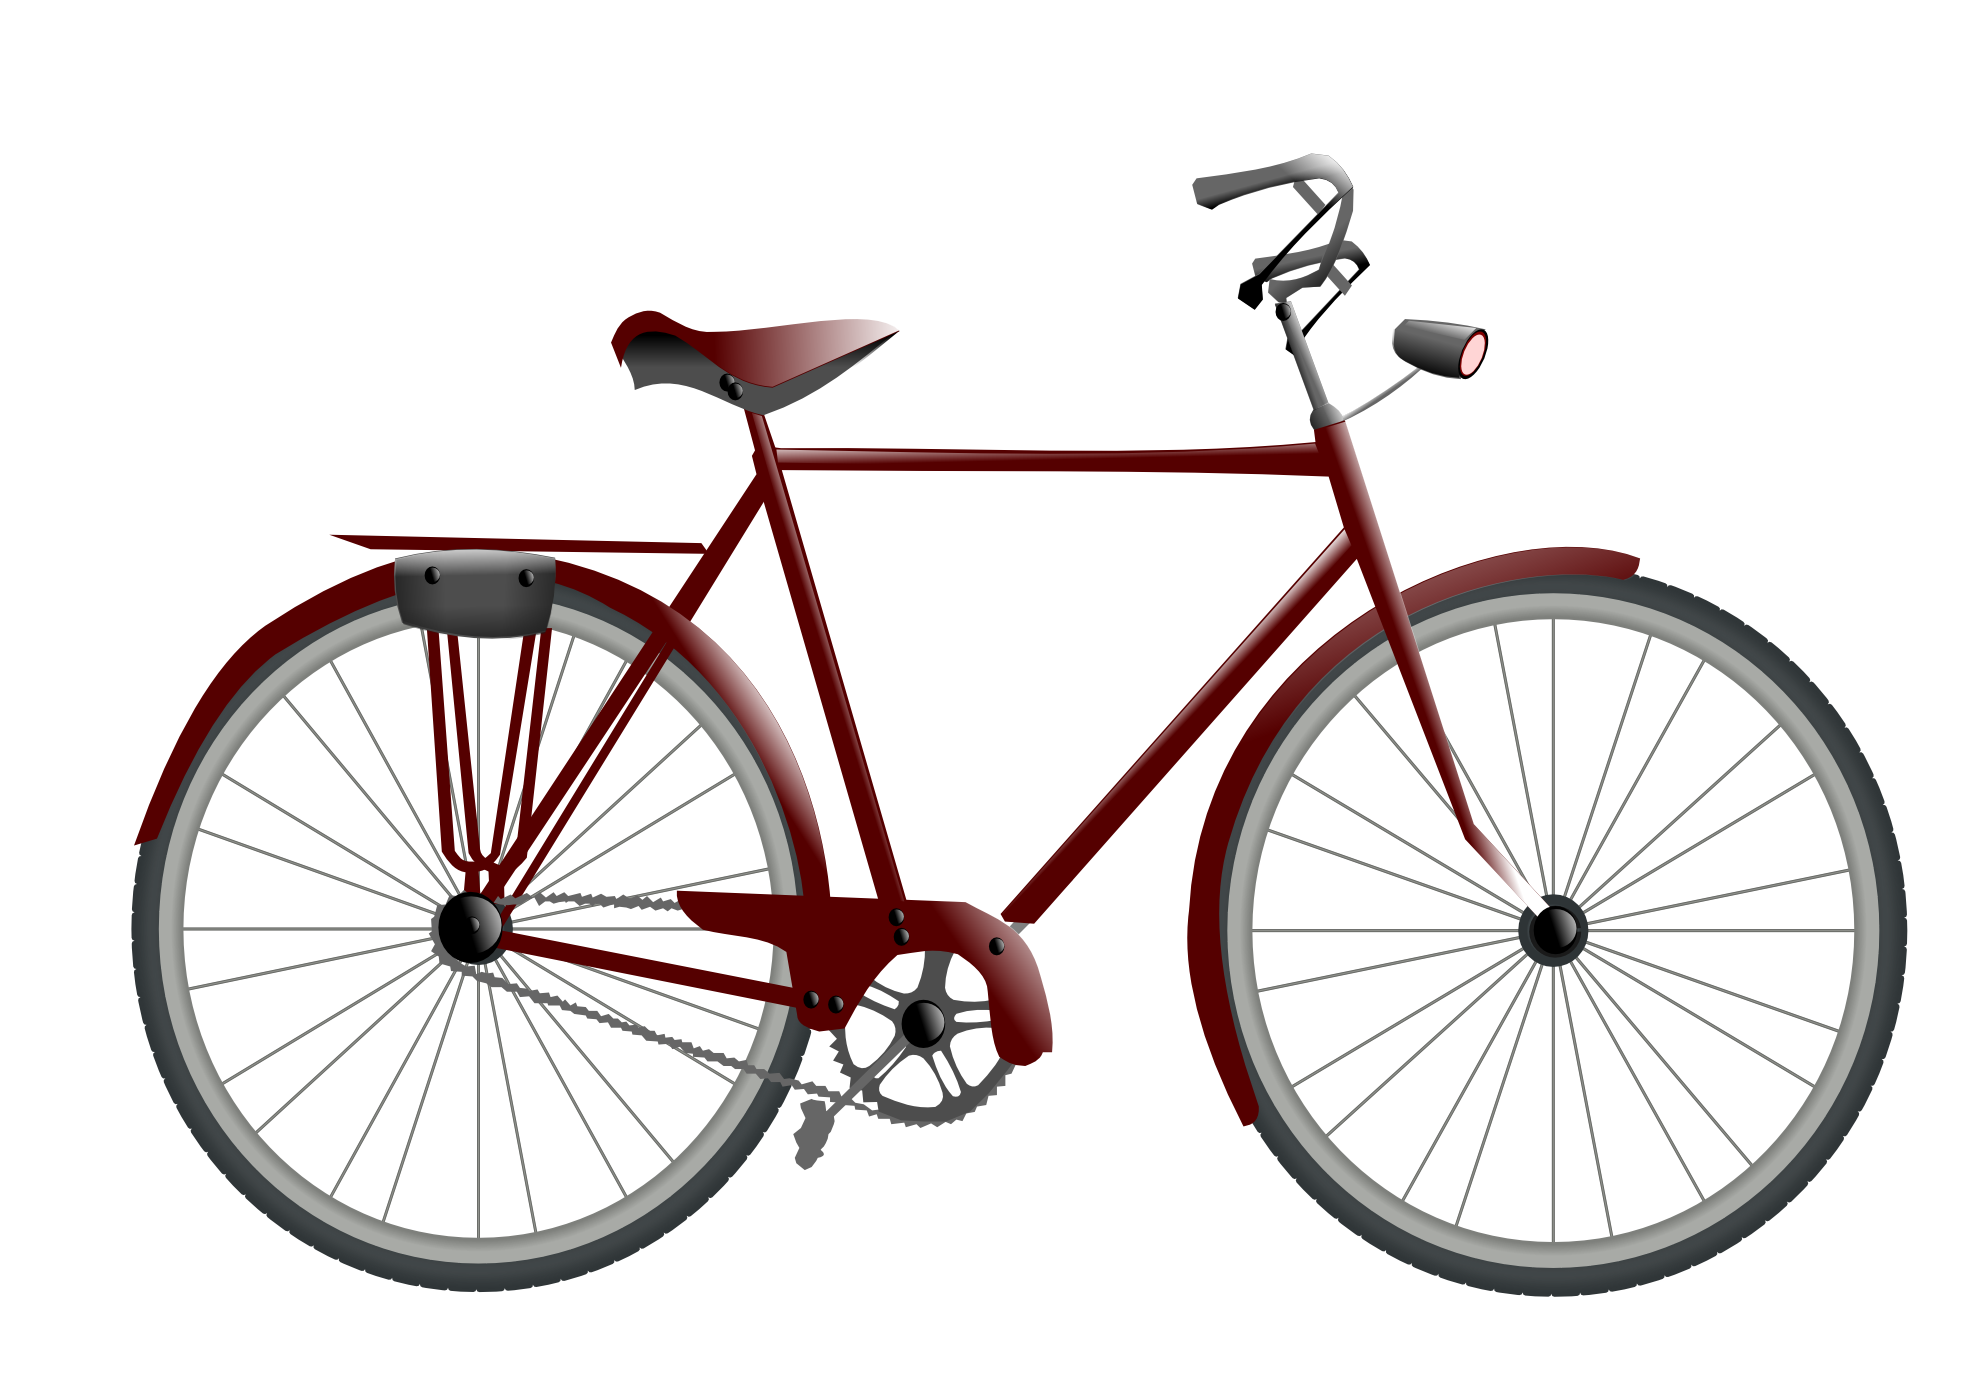 Bicycle clipart antique bike.